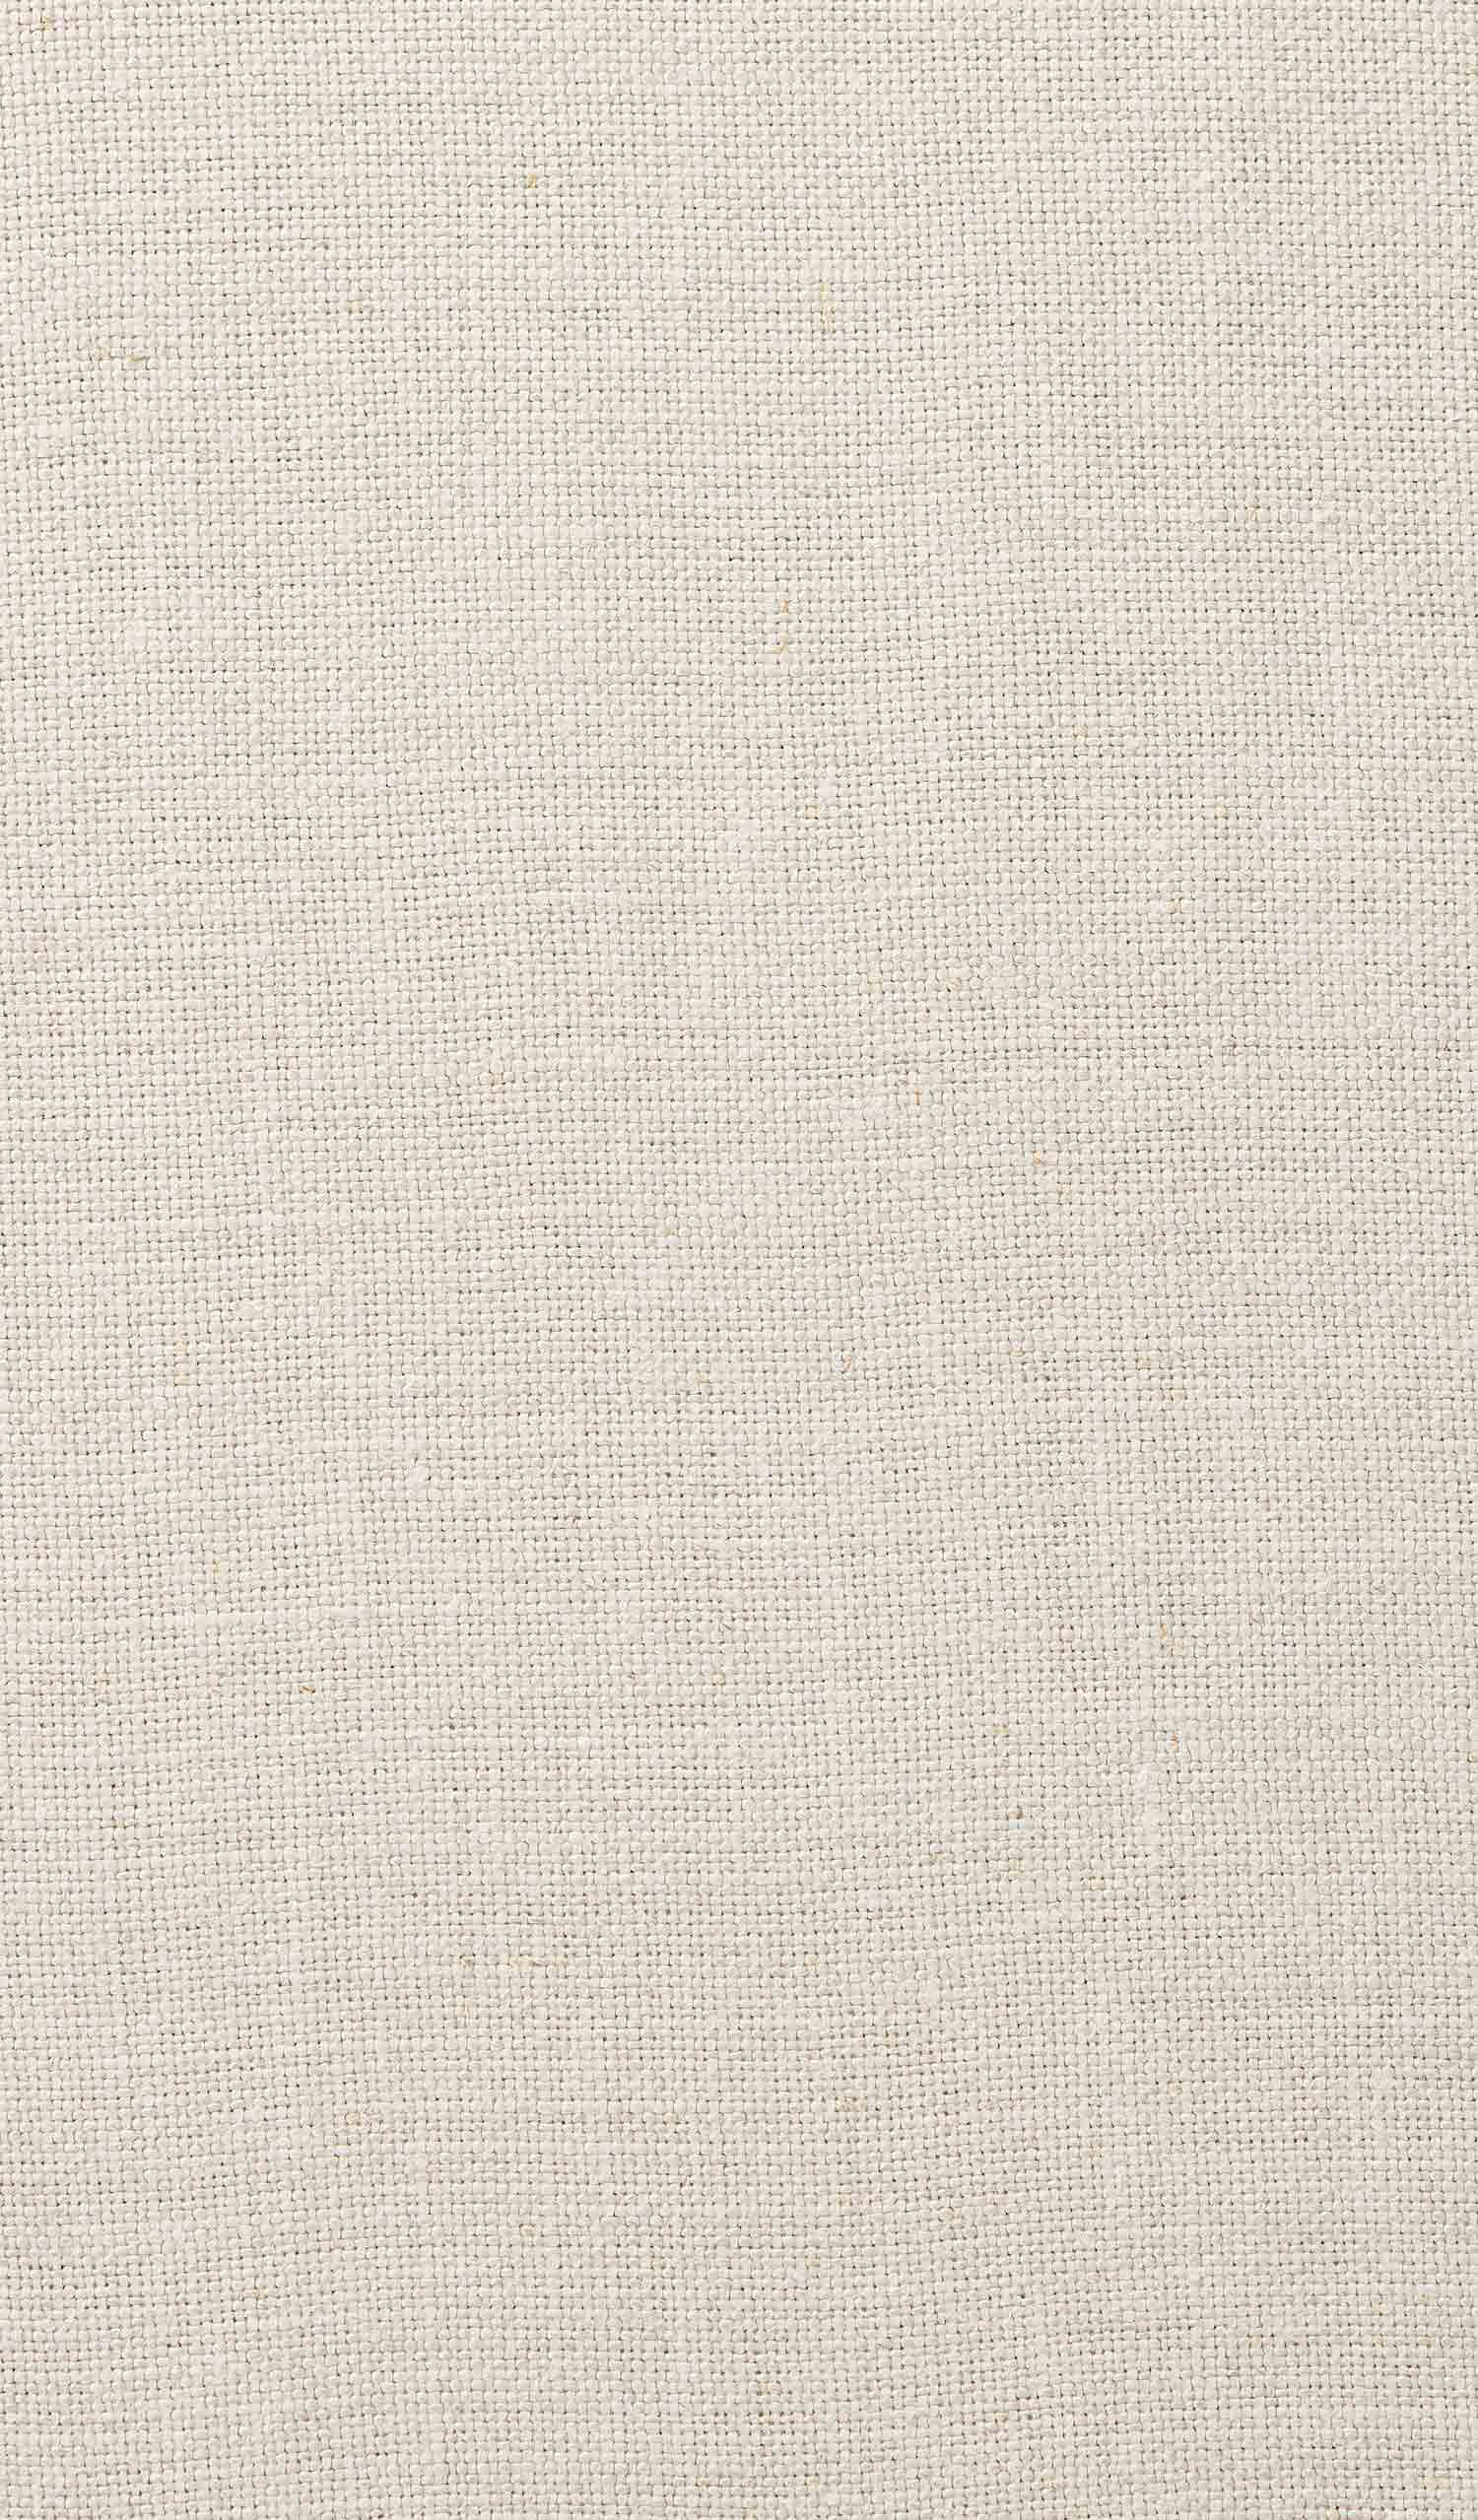 swatch of linen casual natural